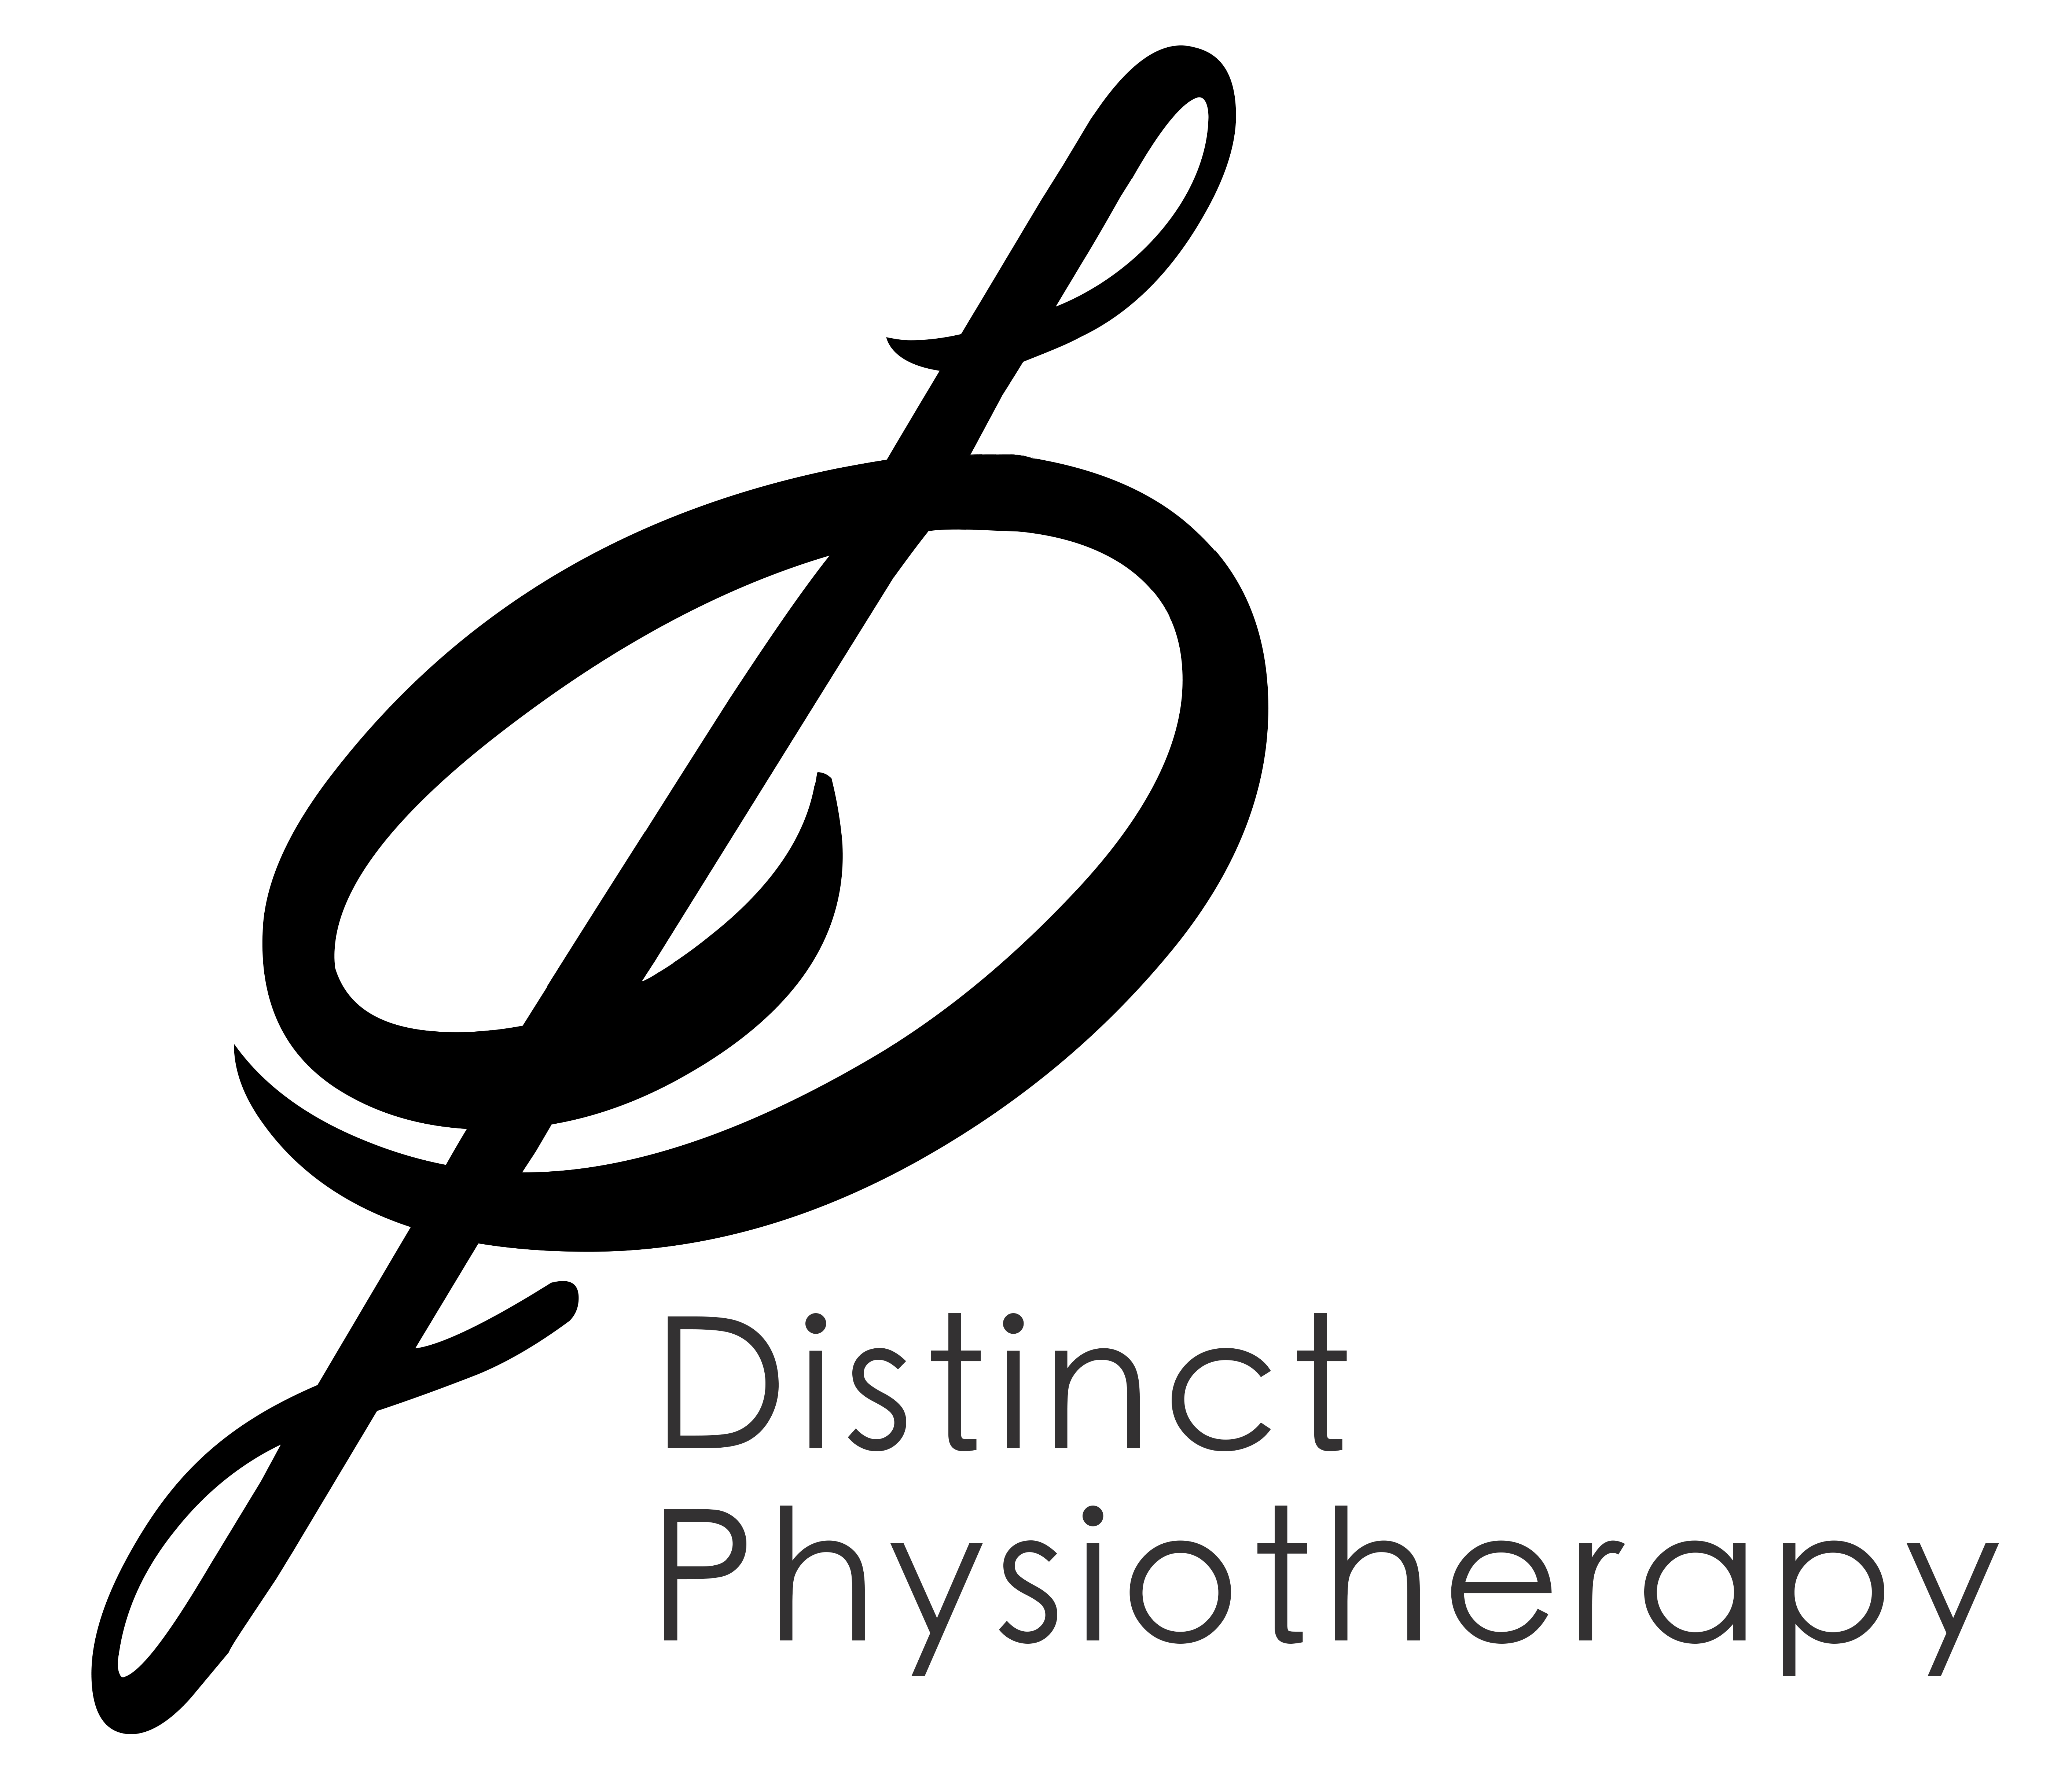 Distinct Physiotherapy company logo